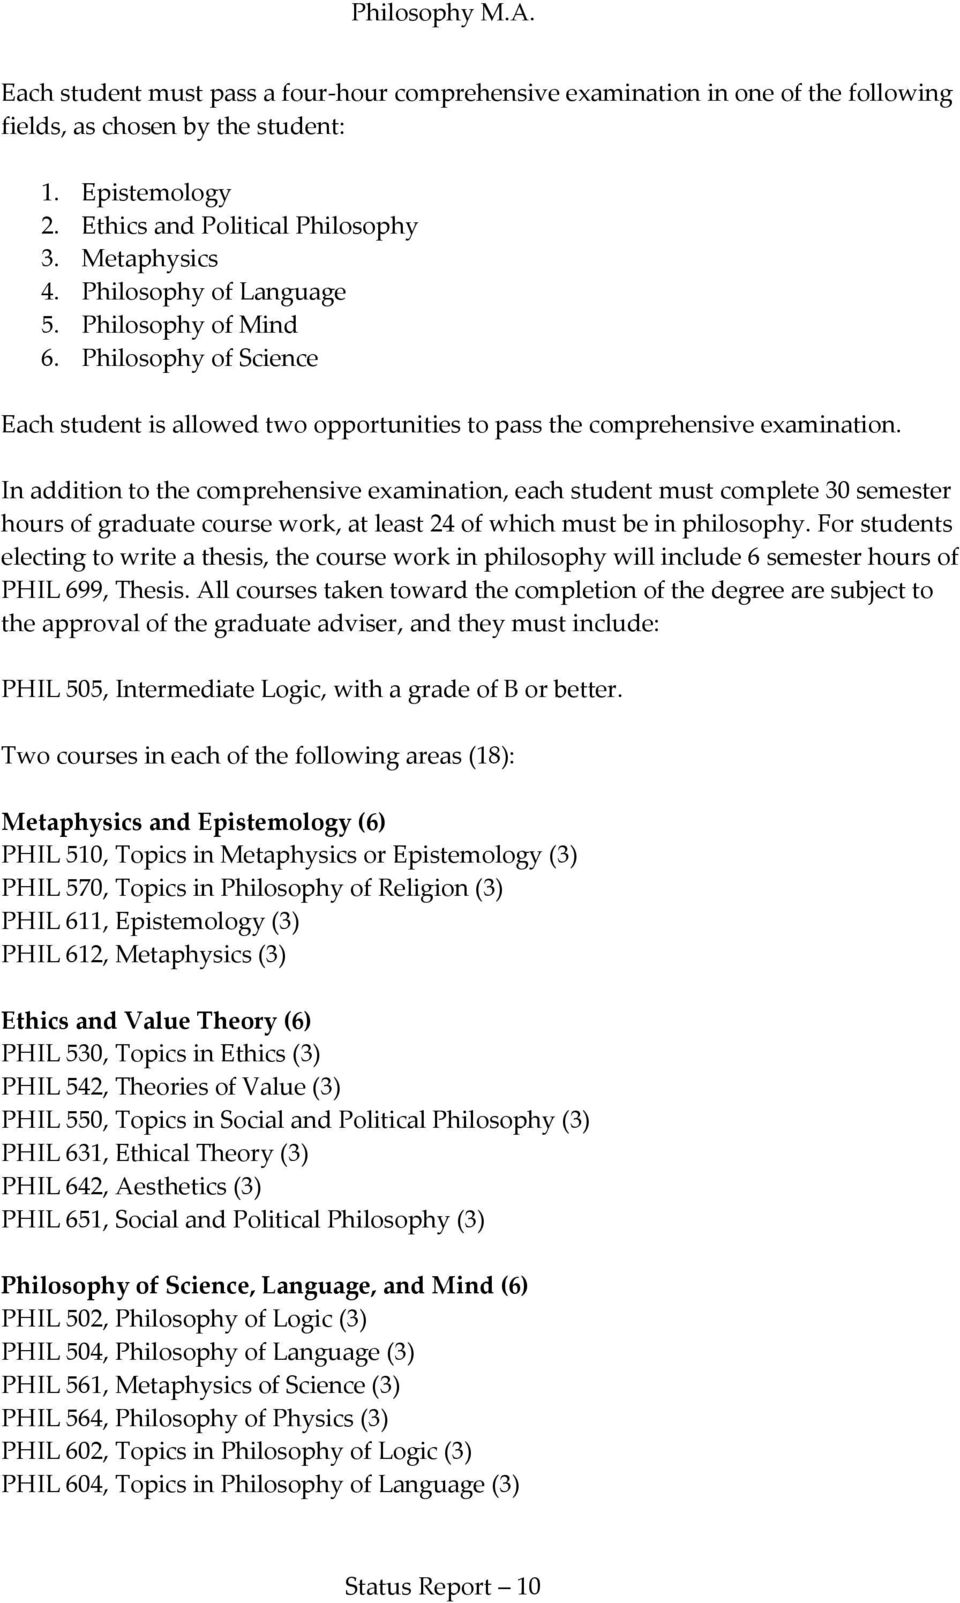 In addition to the comprehensive examination, each student must complete 30 semester hours of graduate course work, at least 24 of which must be in philosophy.